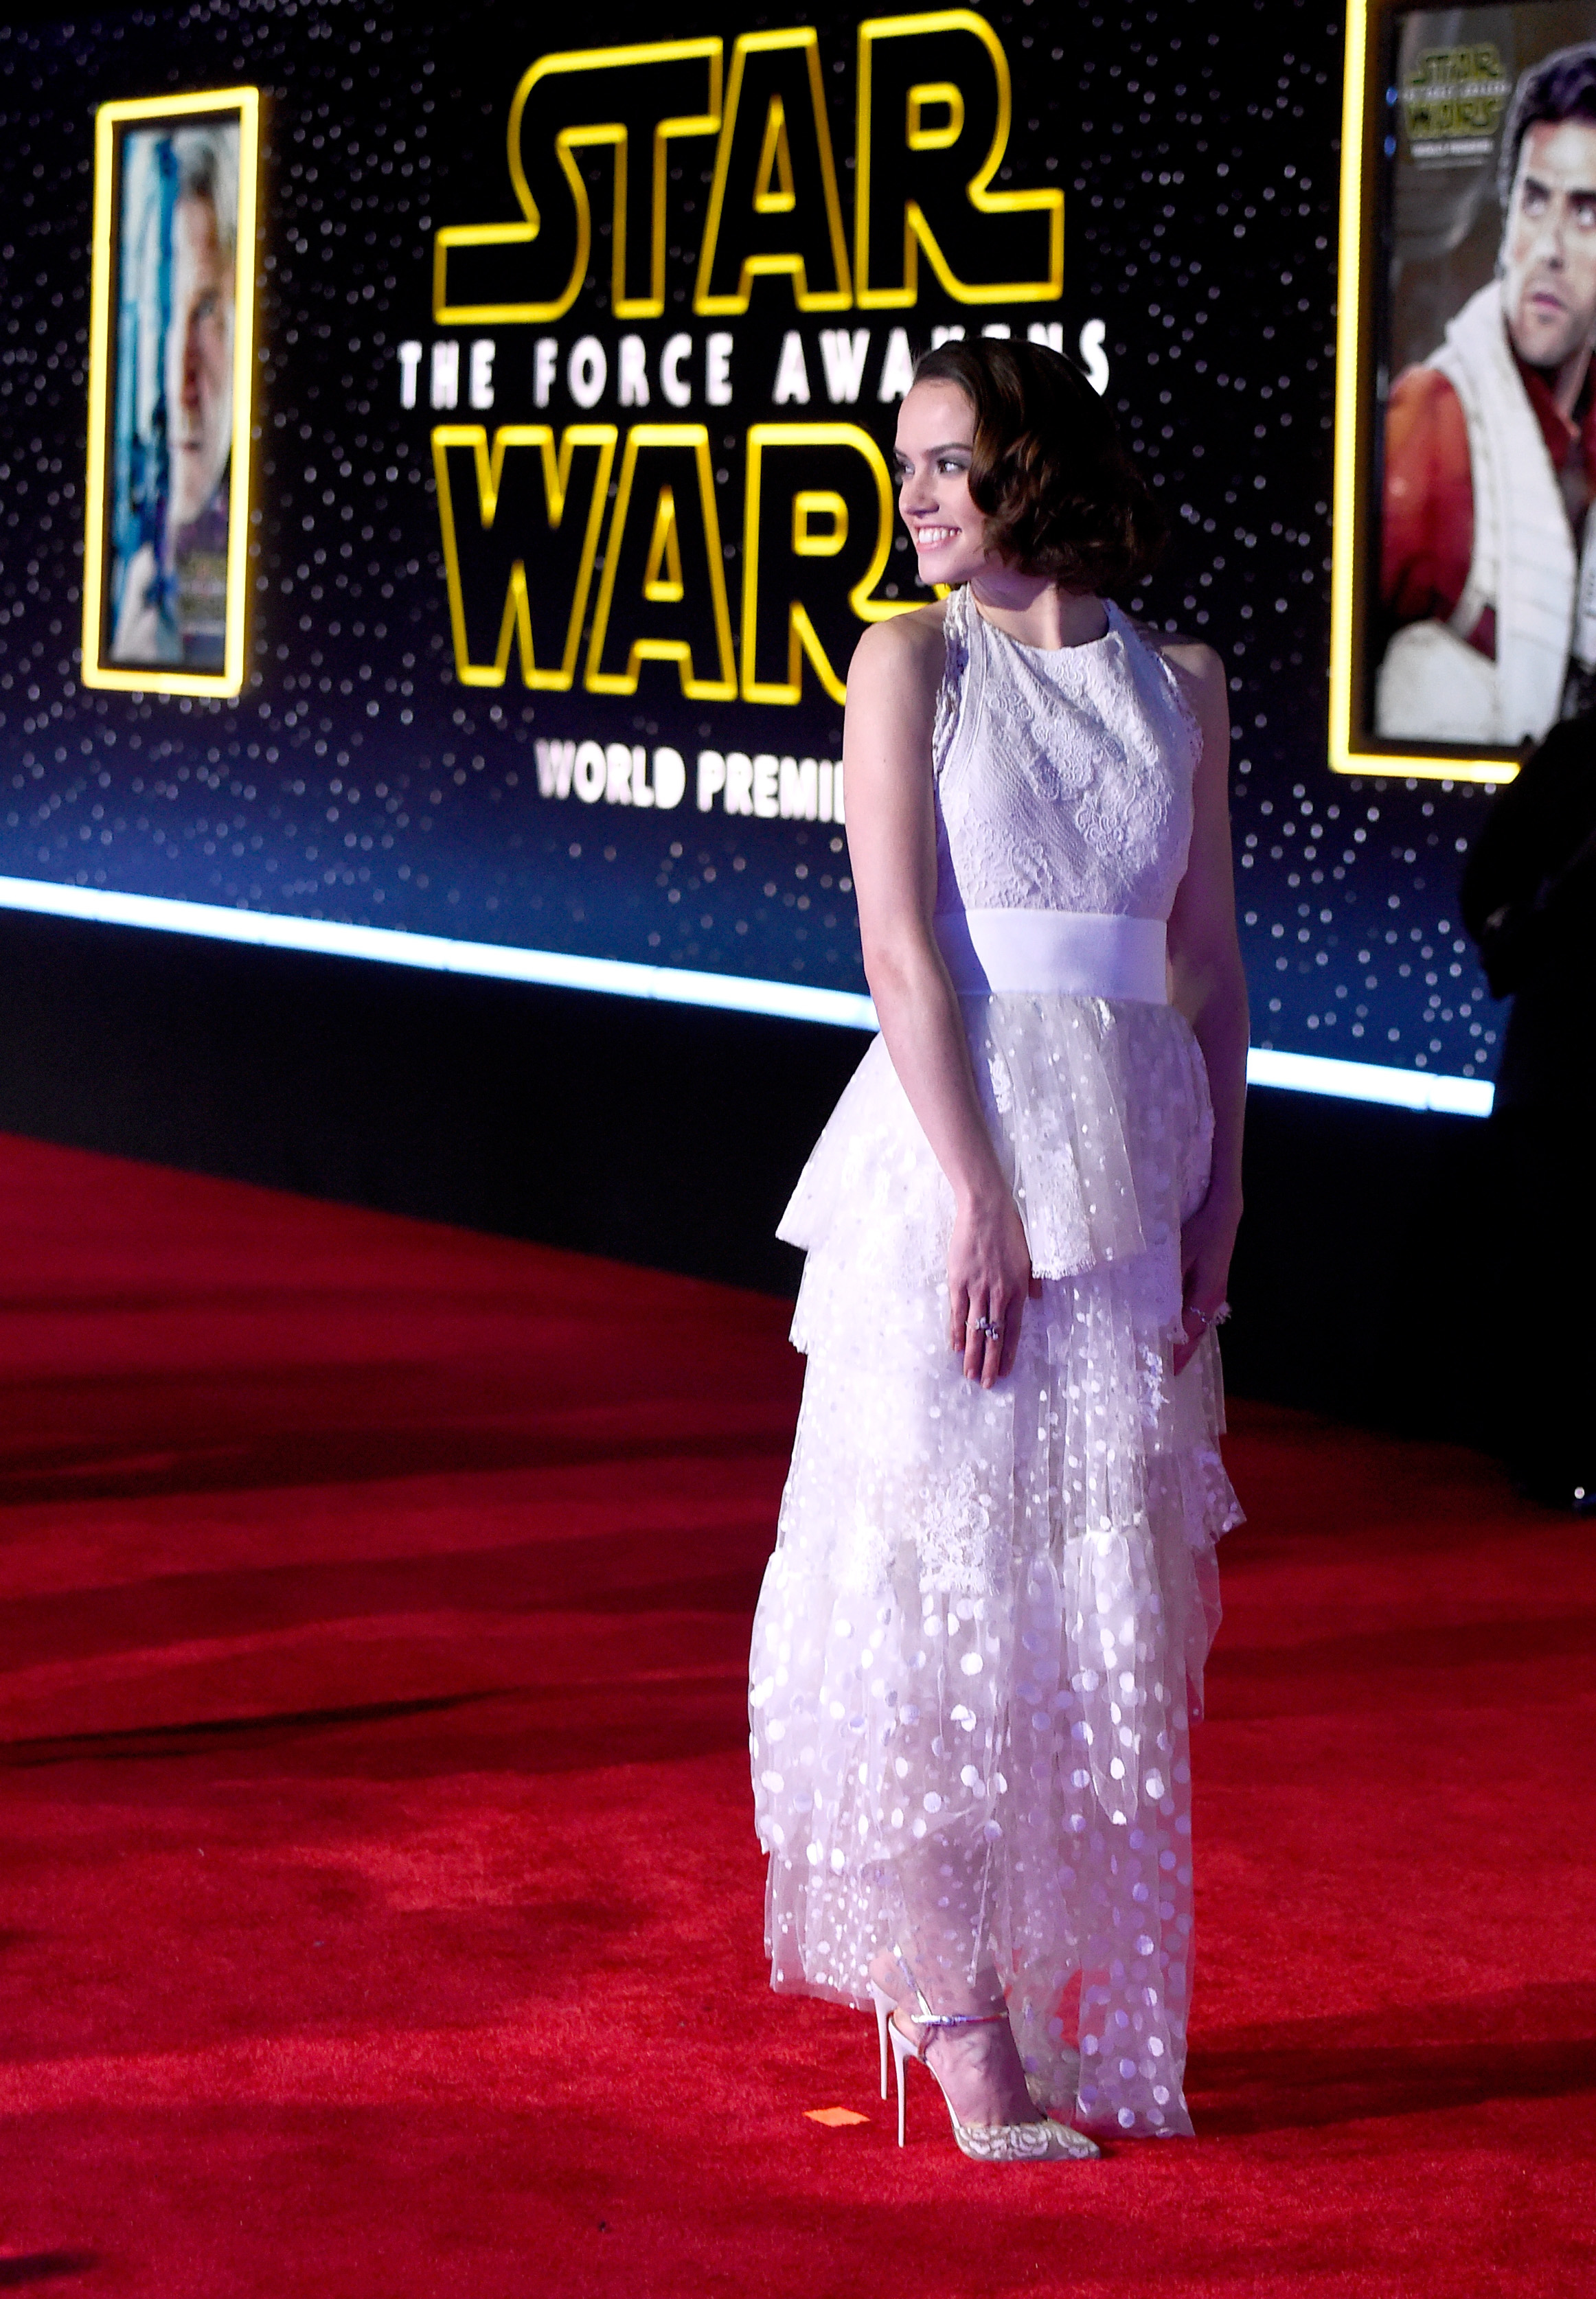 Daisy Ridley - Premiere of 'Star Wars: The Force Awakens' / Hollywood, Los Angeles, 14.12.2015